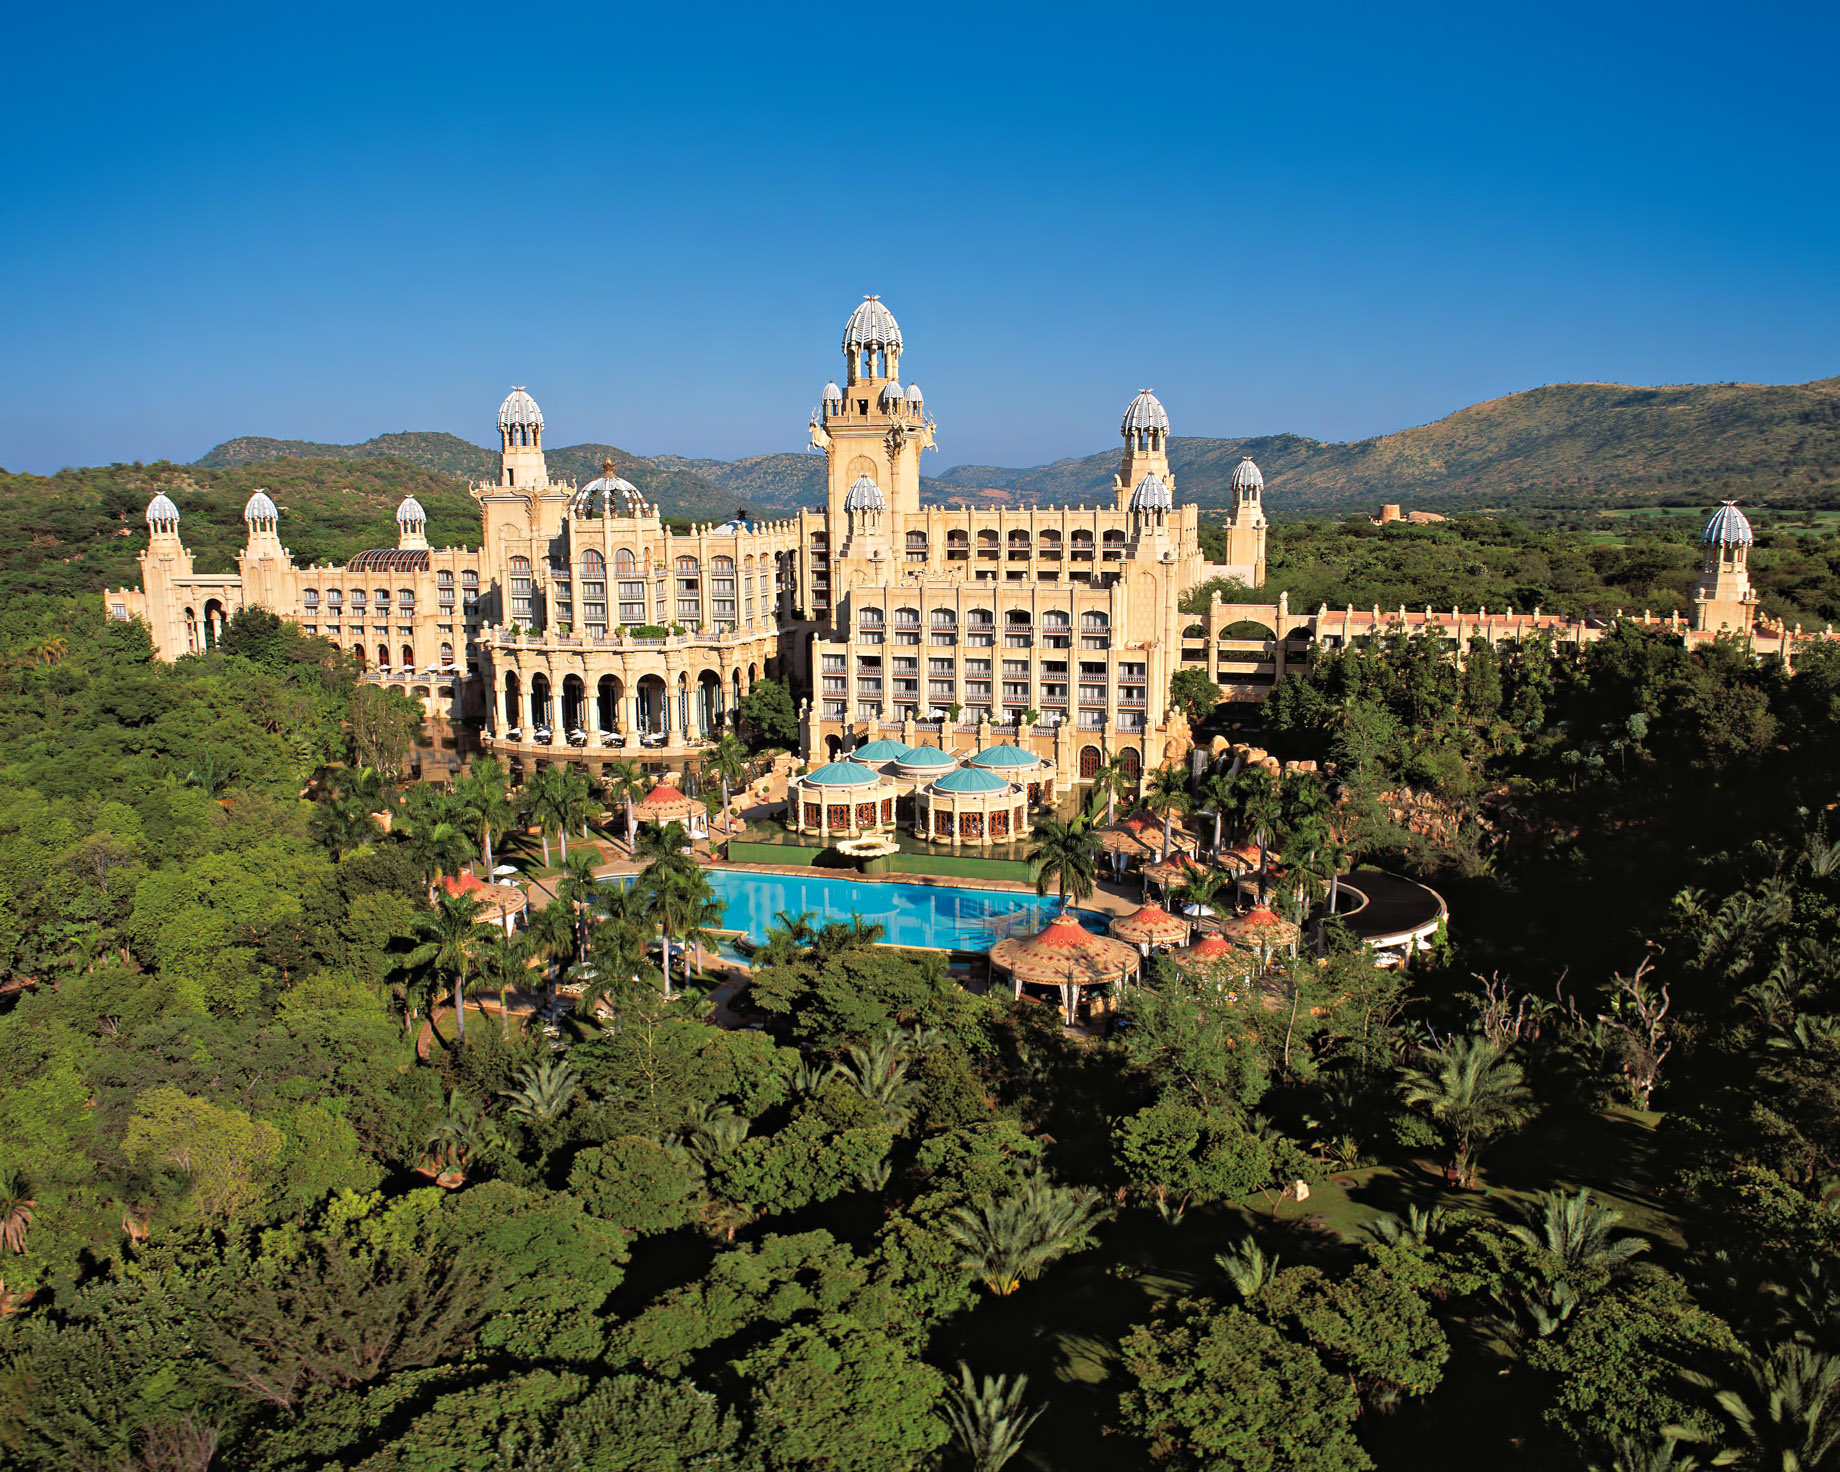 The Palace of the Lost City - Sun City Resort and Casino - South Africa